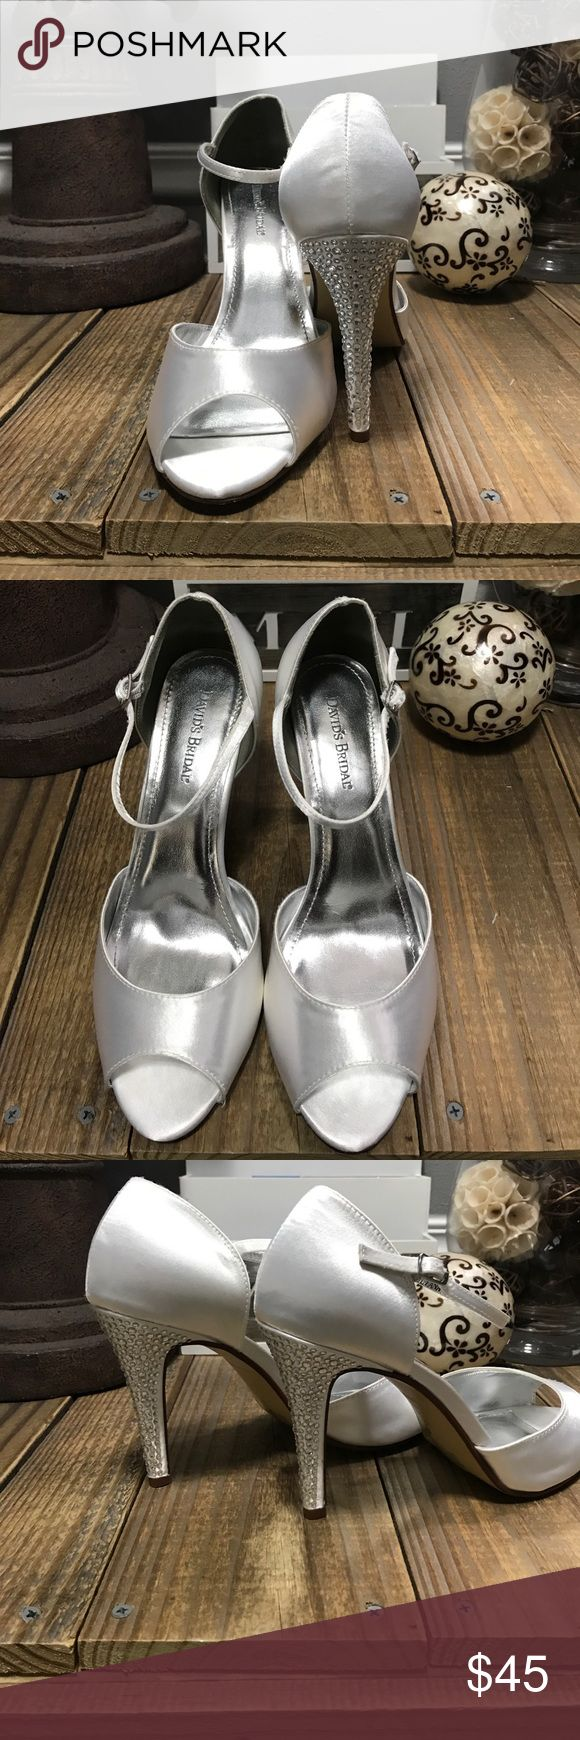 """👰 Davids Bridal Satin & Bling Heels NWOT Who Loves 😍 these Shoes? I Do 💍 Brand New Never Worn. Davids Bridal satin shoe, perfect for dying. 3"""" heel. Size 11 (better for 10- 10 1/2). No Box, sorry! But I do have protective shoe bags for them. Davids Bridal Shoes Heels"""